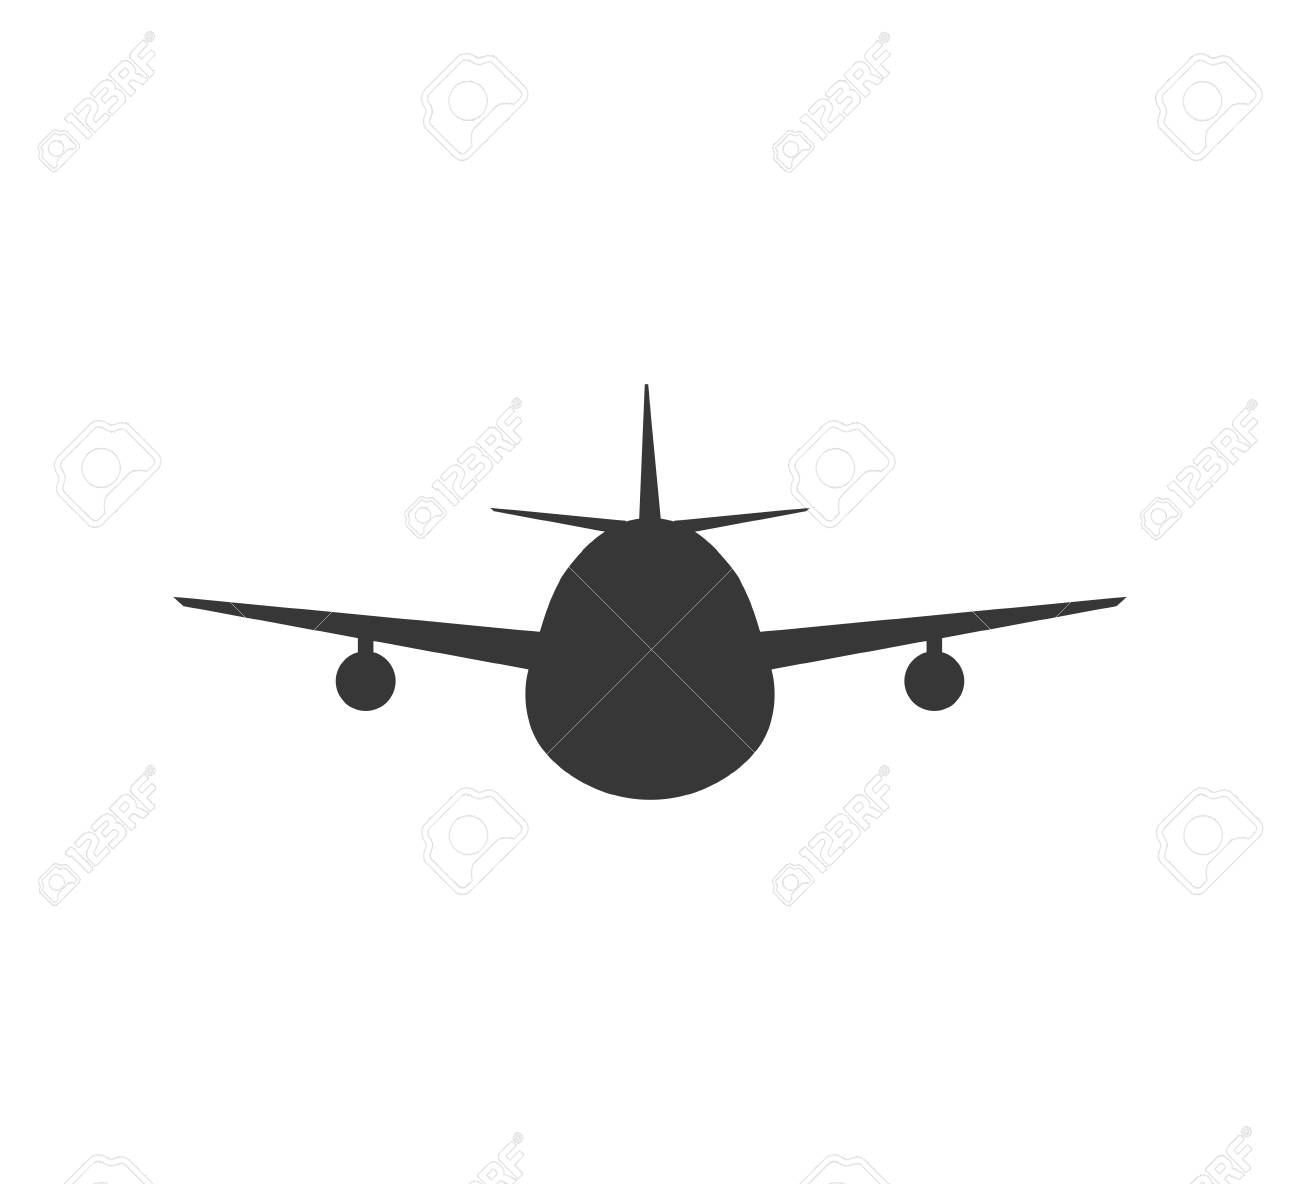 airplane silhouette travel transporation flying icon isolated